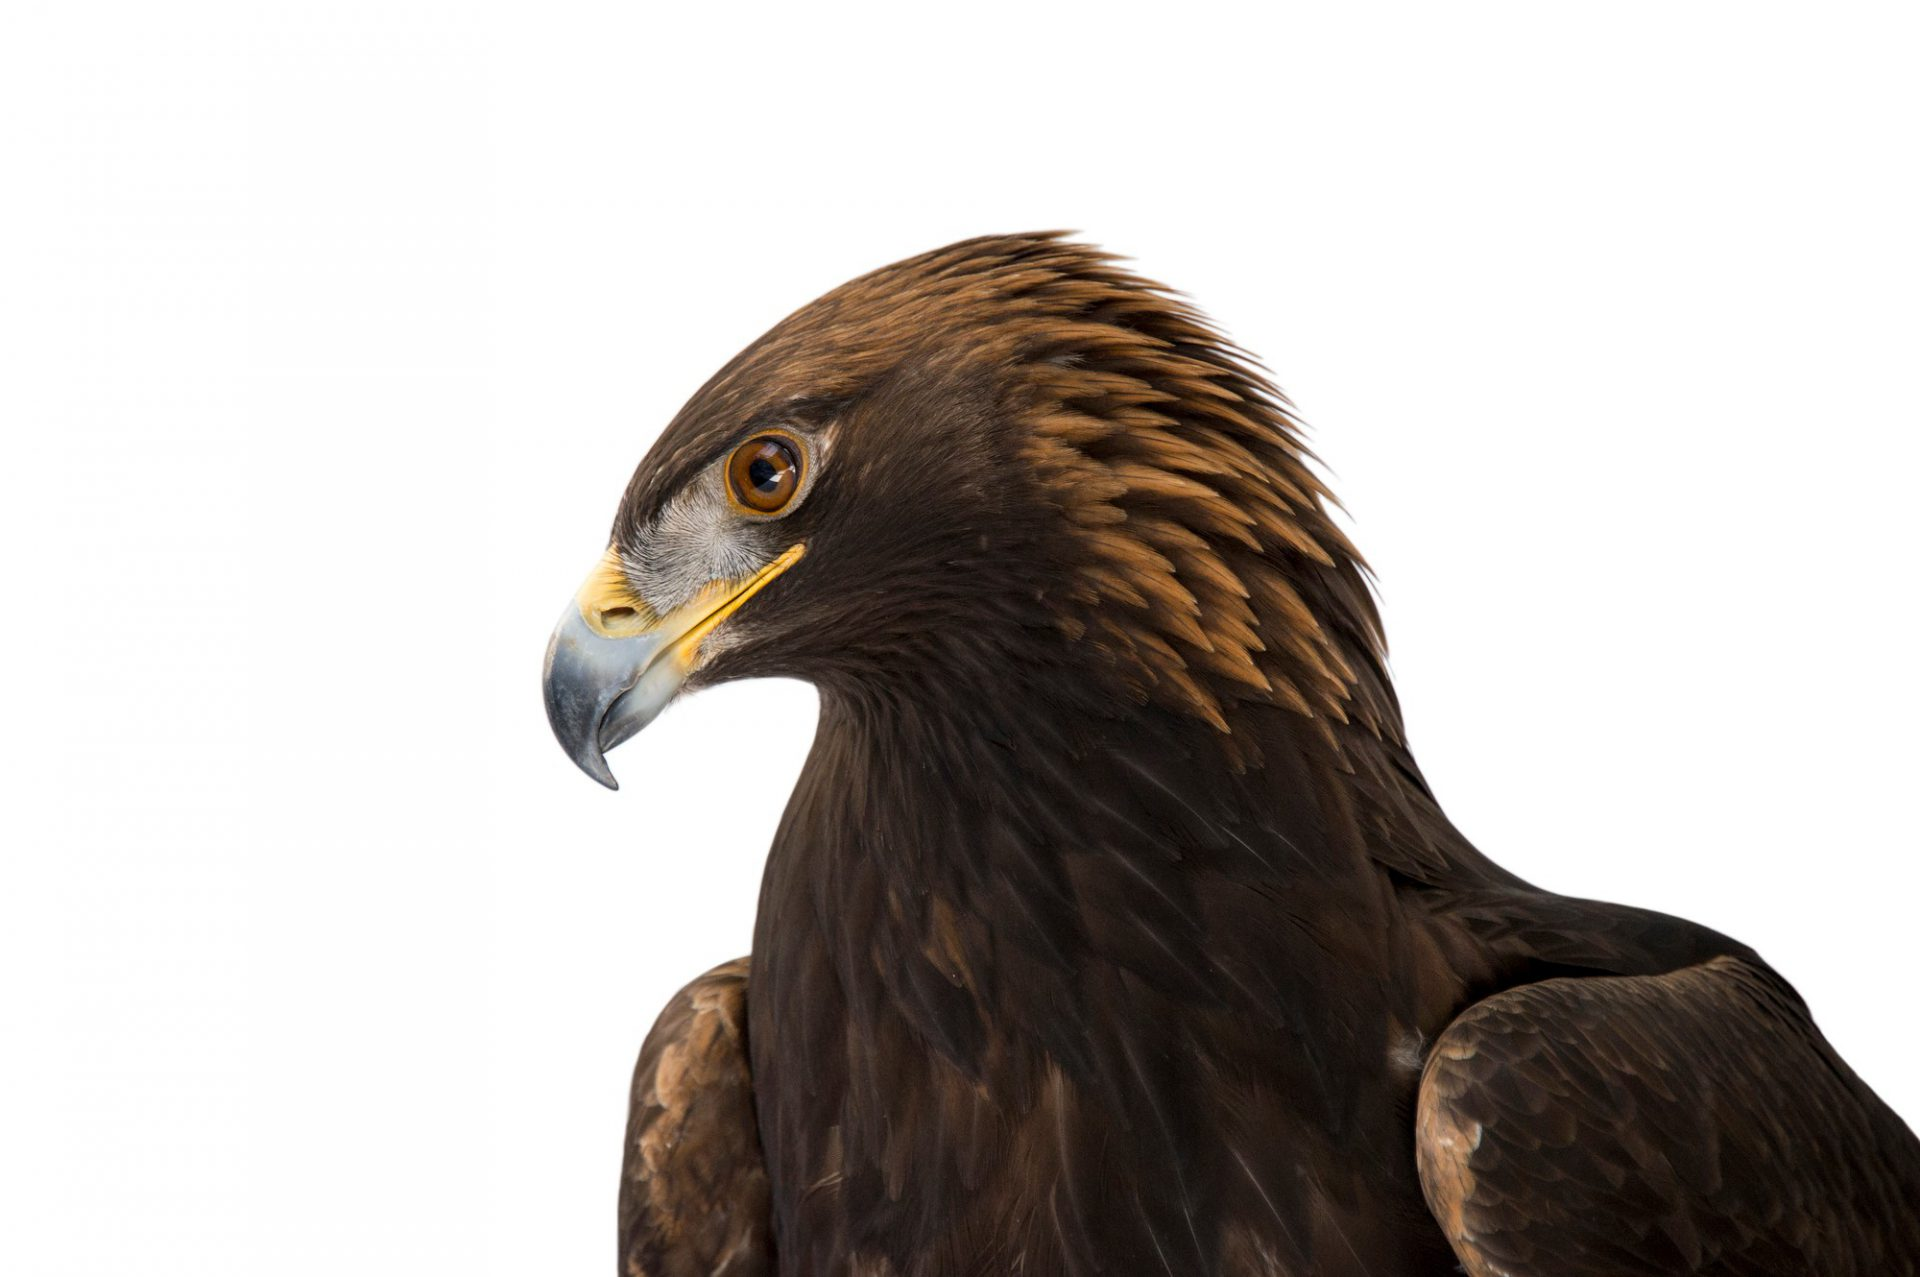 A golden eagle (Aquila chrysaetos canadensis) named Zephyr at the Point Defiance Zoo.